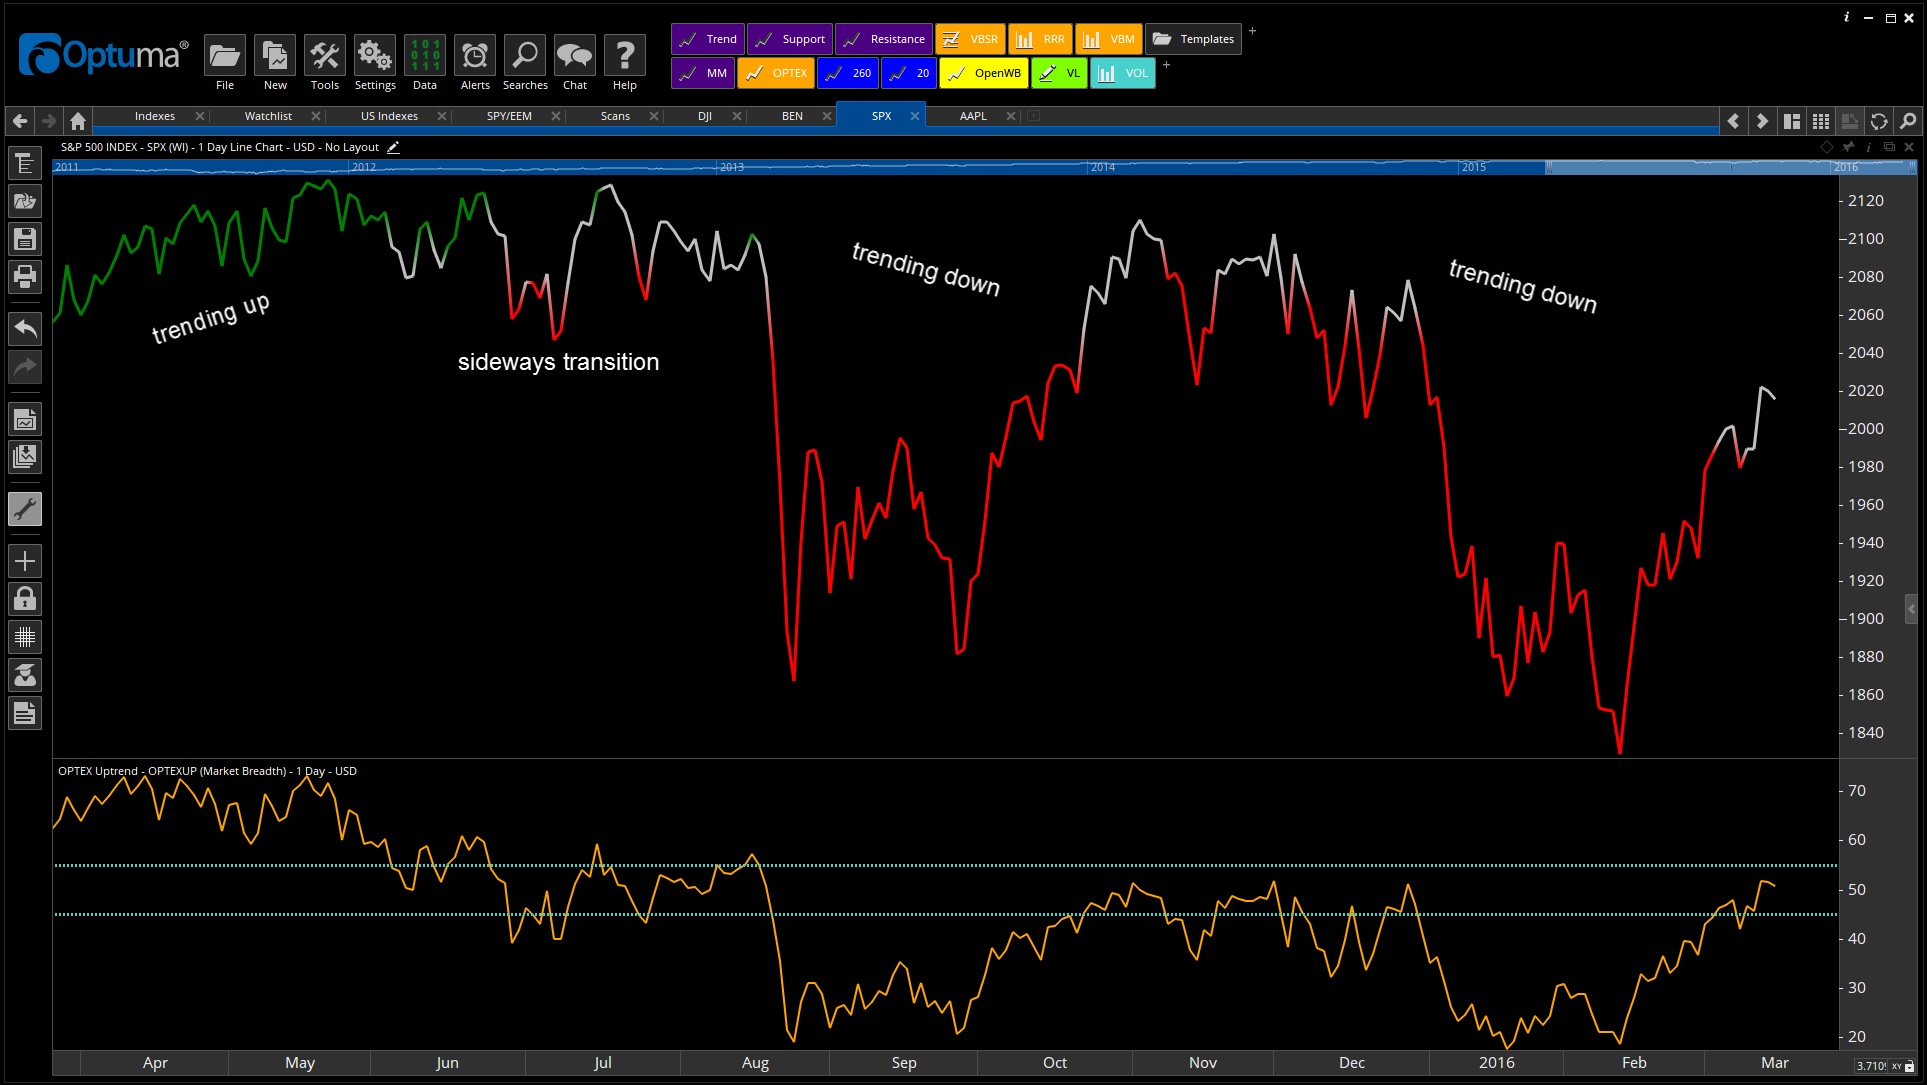 The S&P 500 and its breadth over the last year.